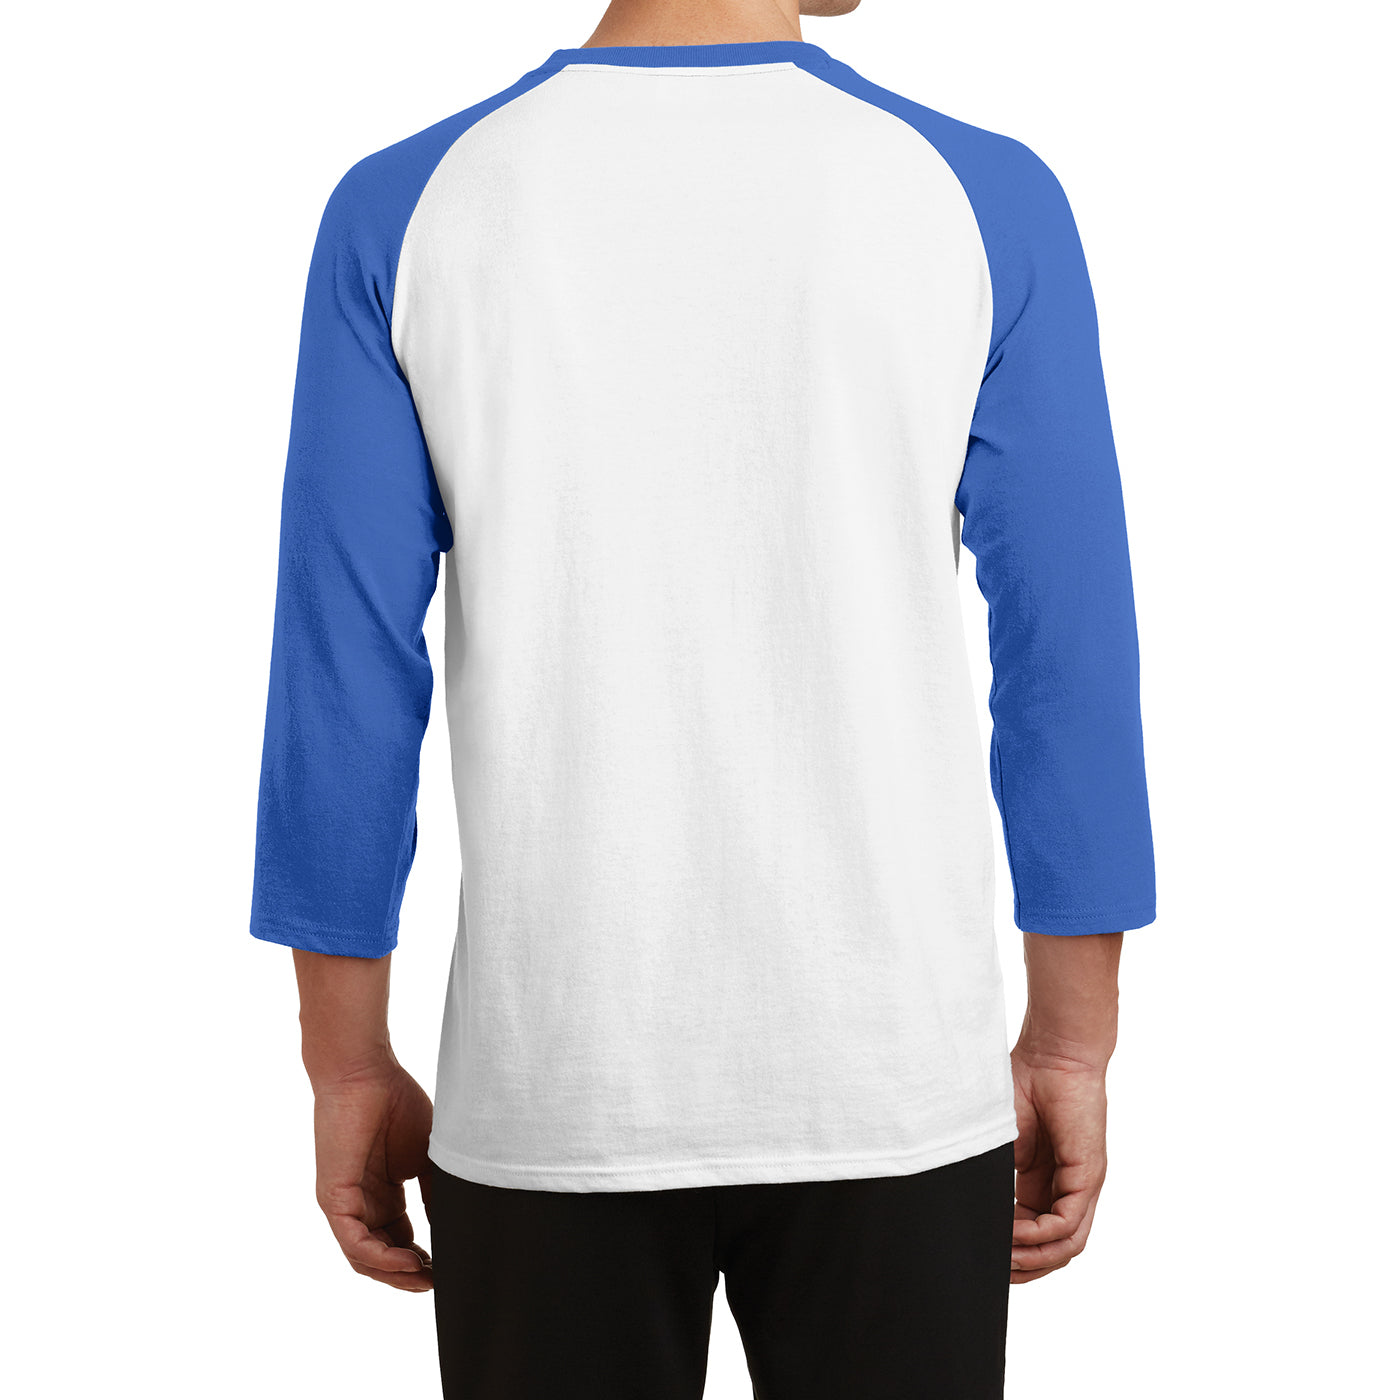 Men's Core Blend 3/4-Sleeve Raglan Tee - White/ Royal - Back